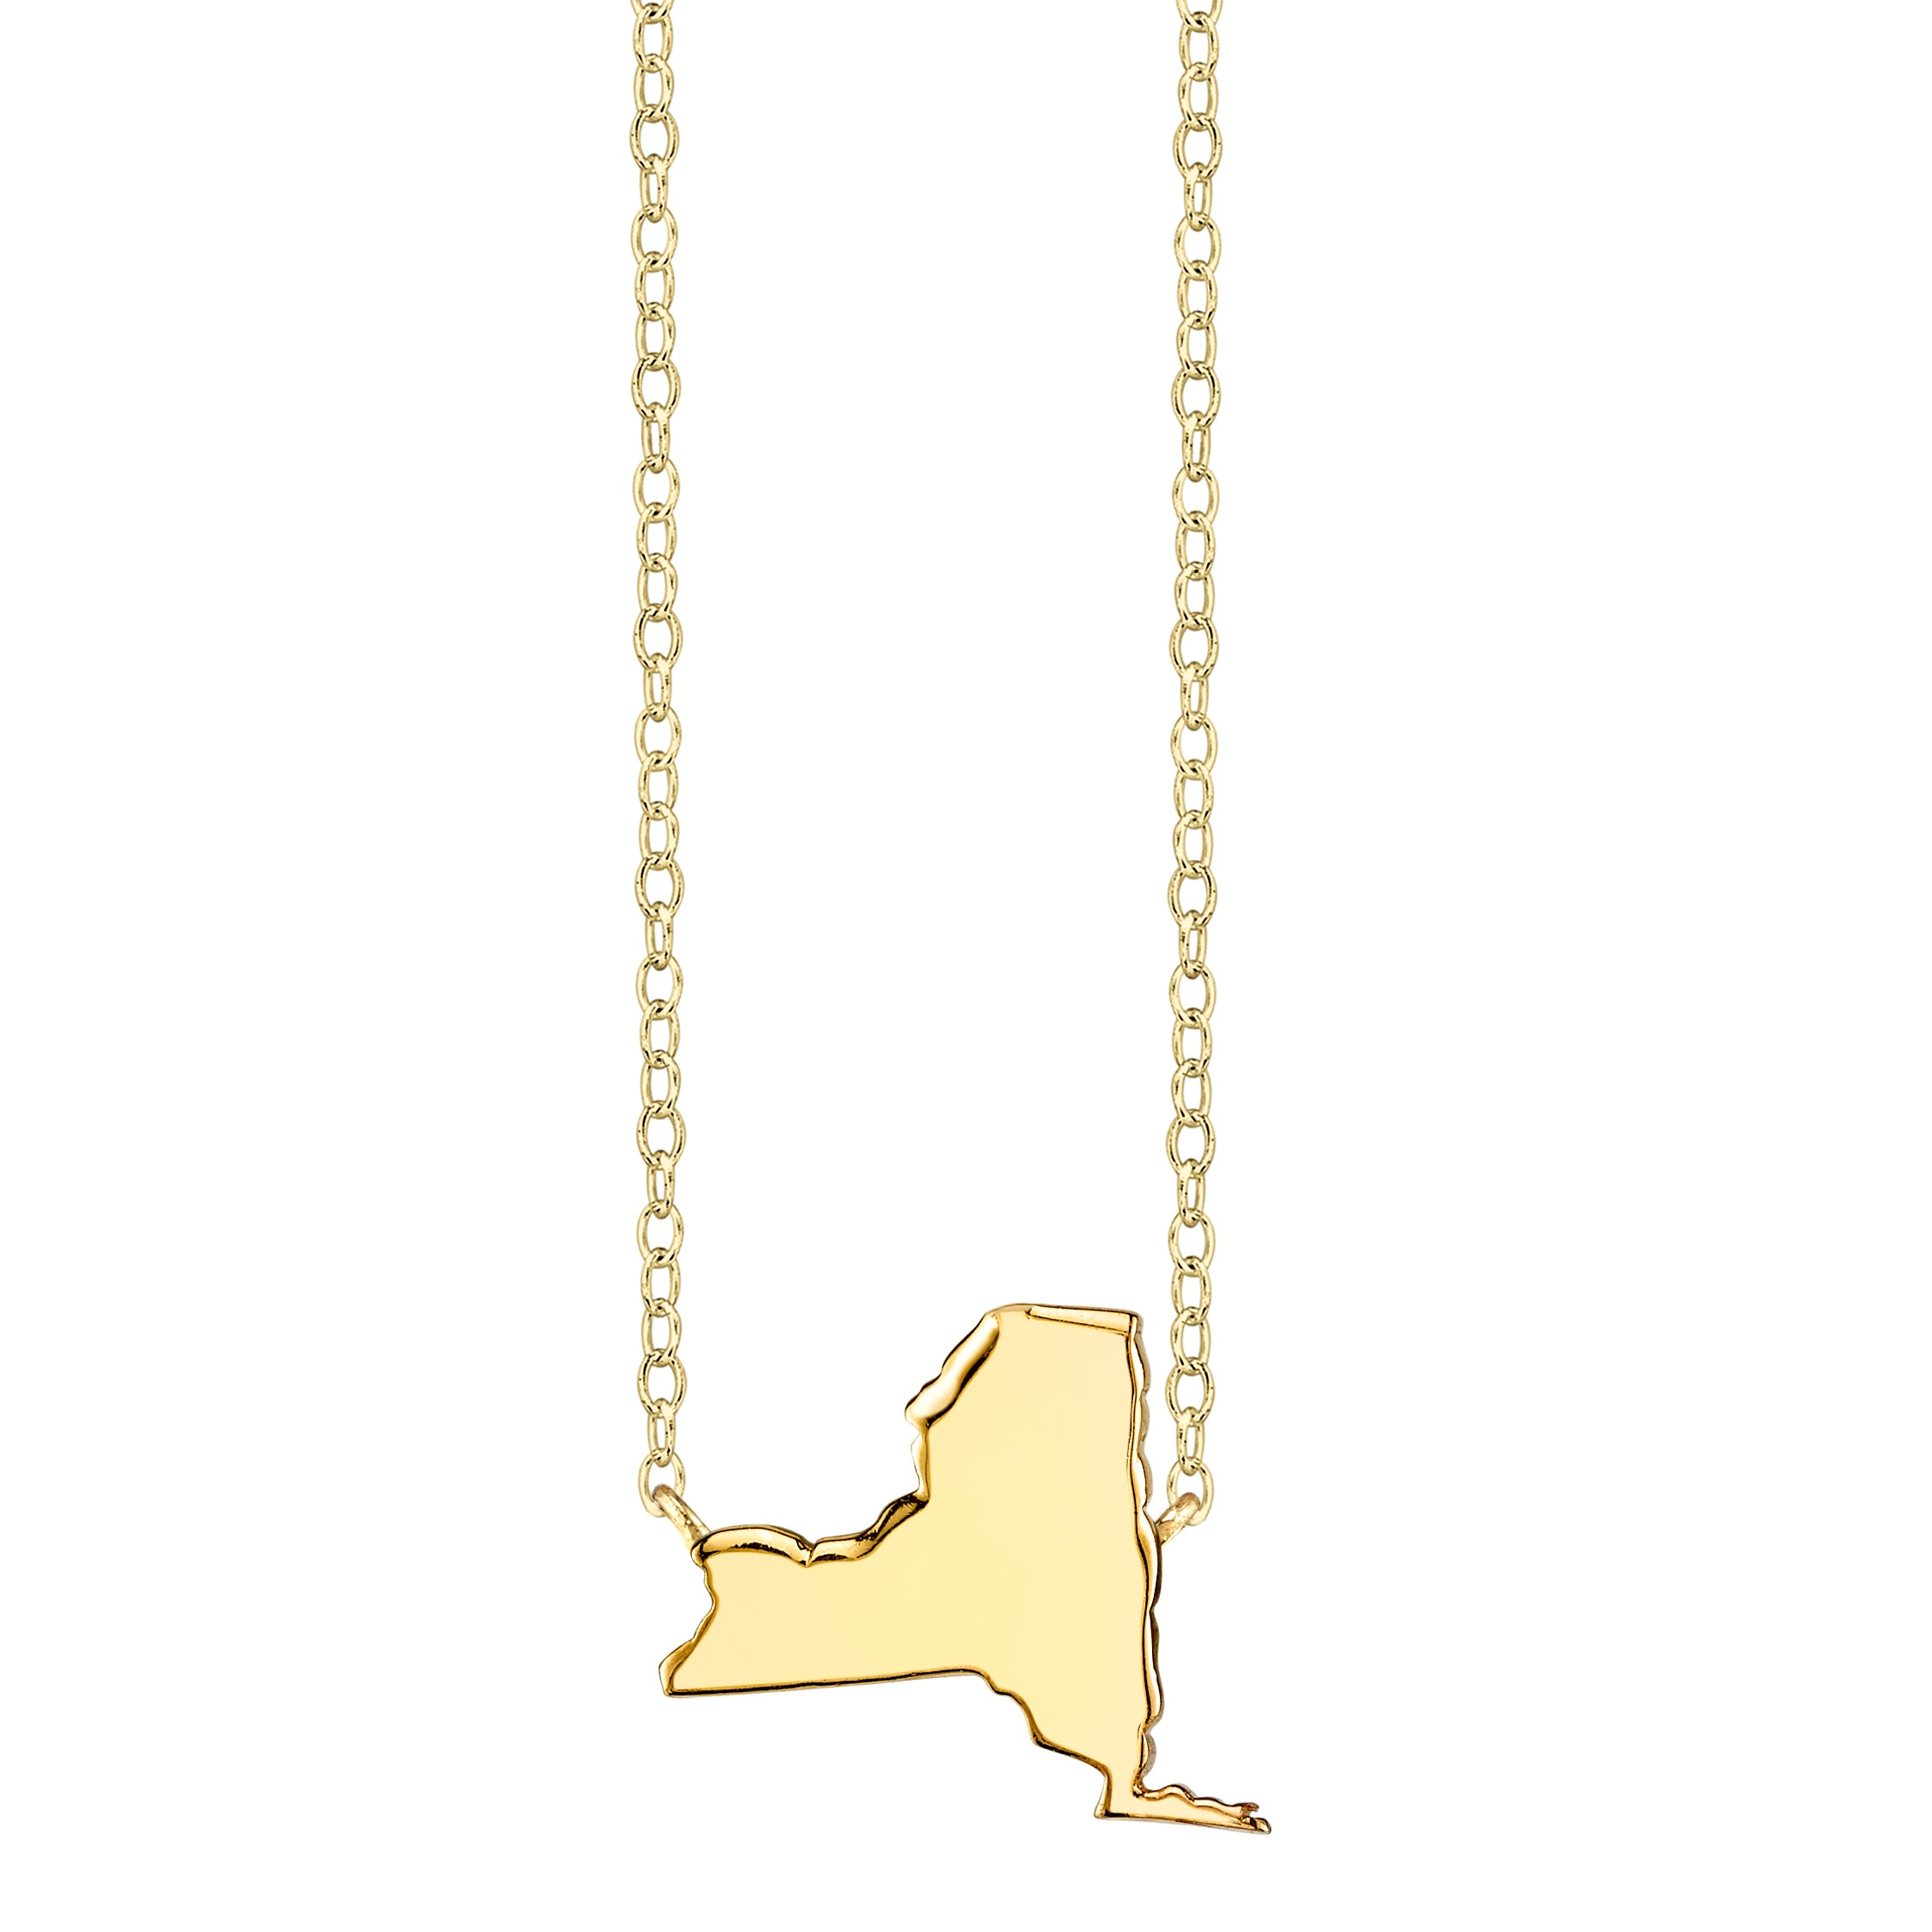 Custom New York Necklace New York Pendant Necklace Sterling Silver New York Charm Necklace New York State Necklace Choose Your Font